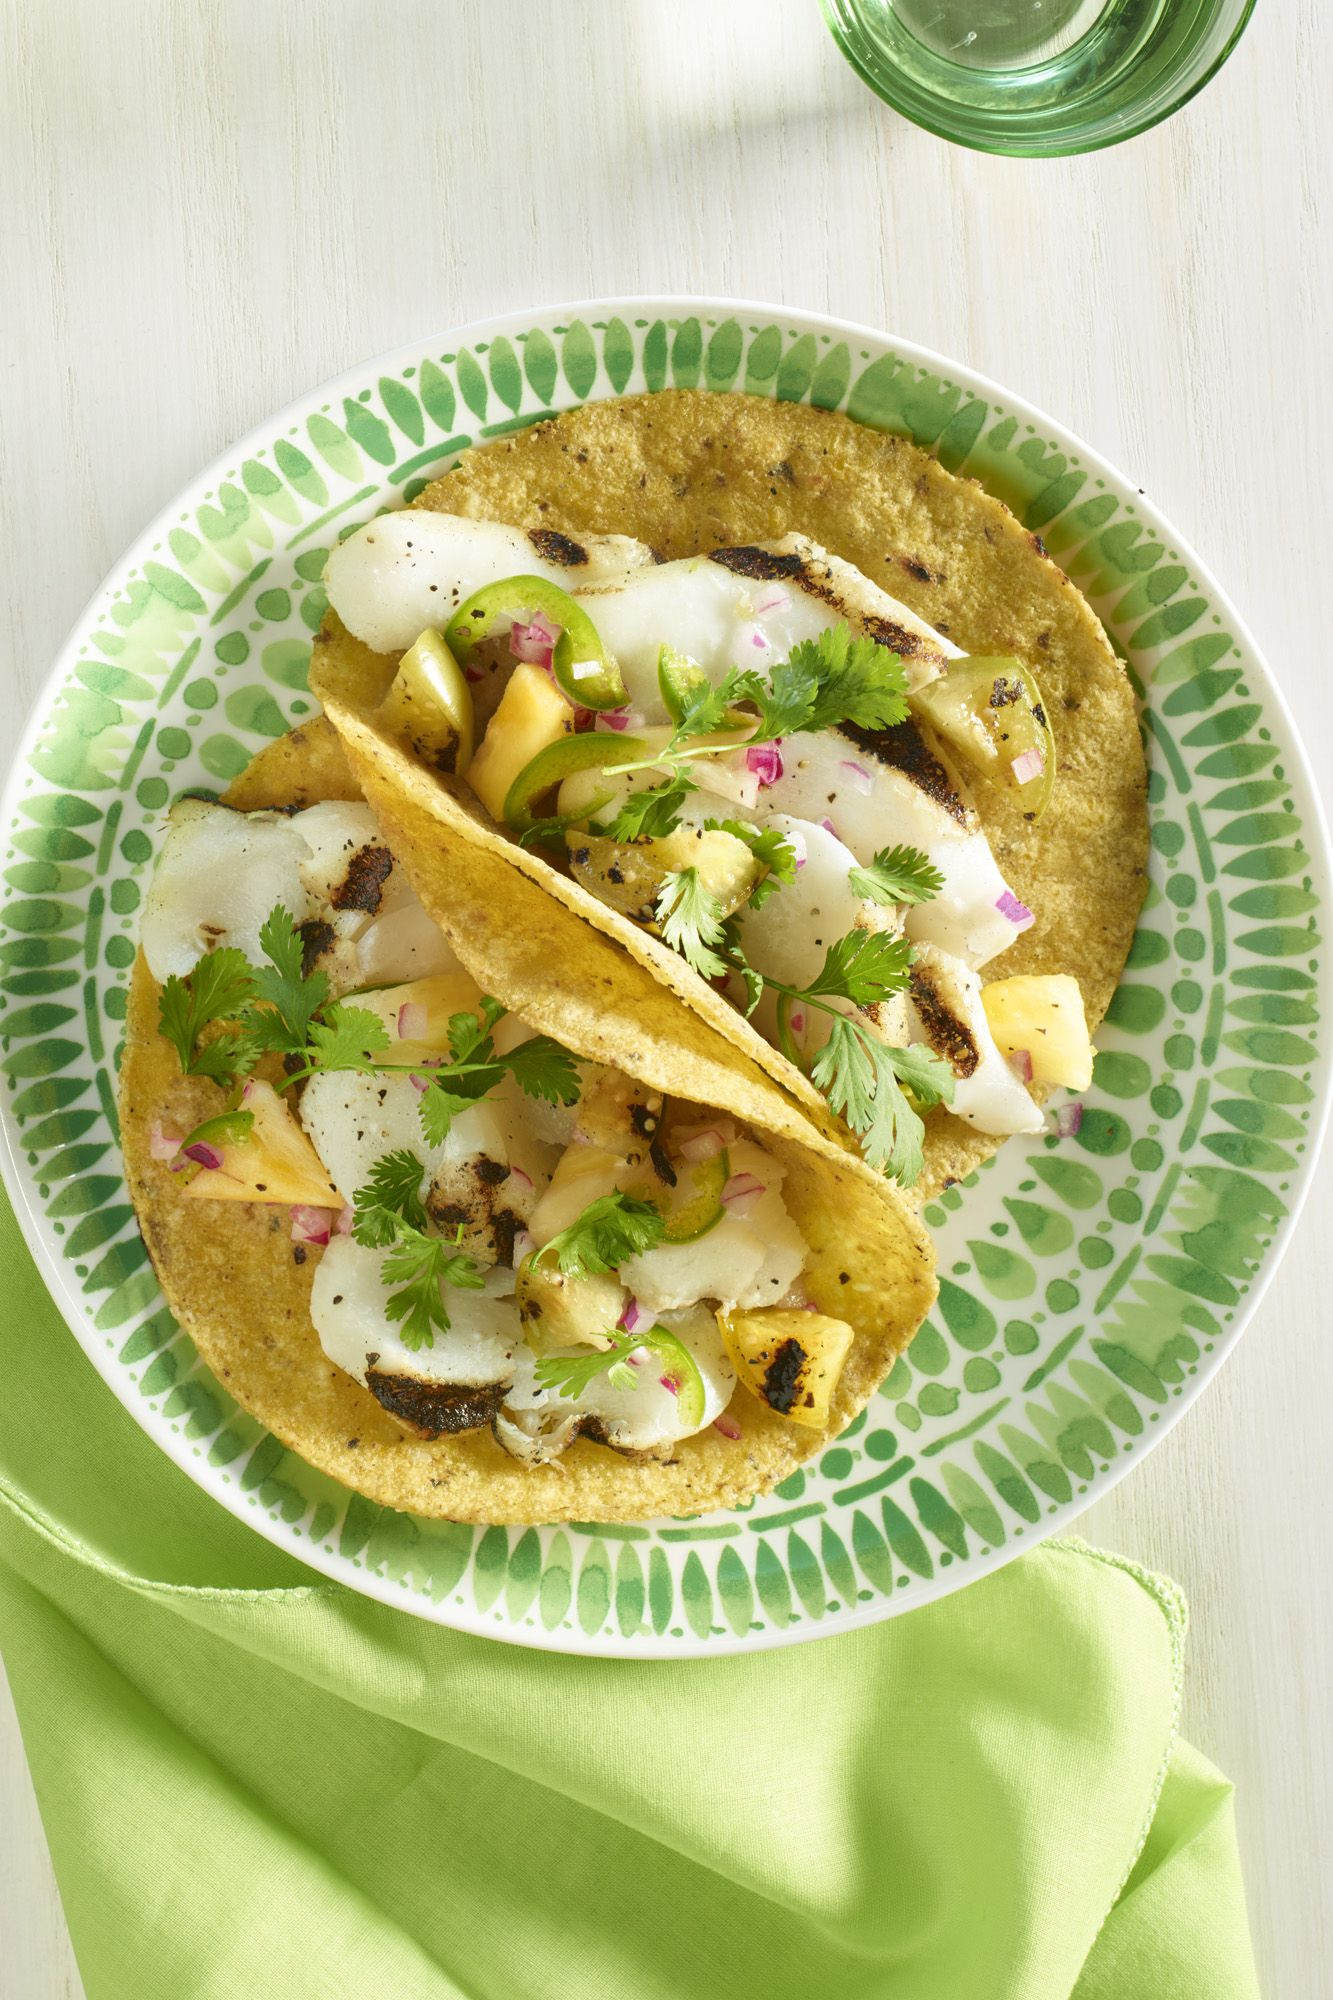 Heart Healthy Recipes - Grilled Fish Tacos